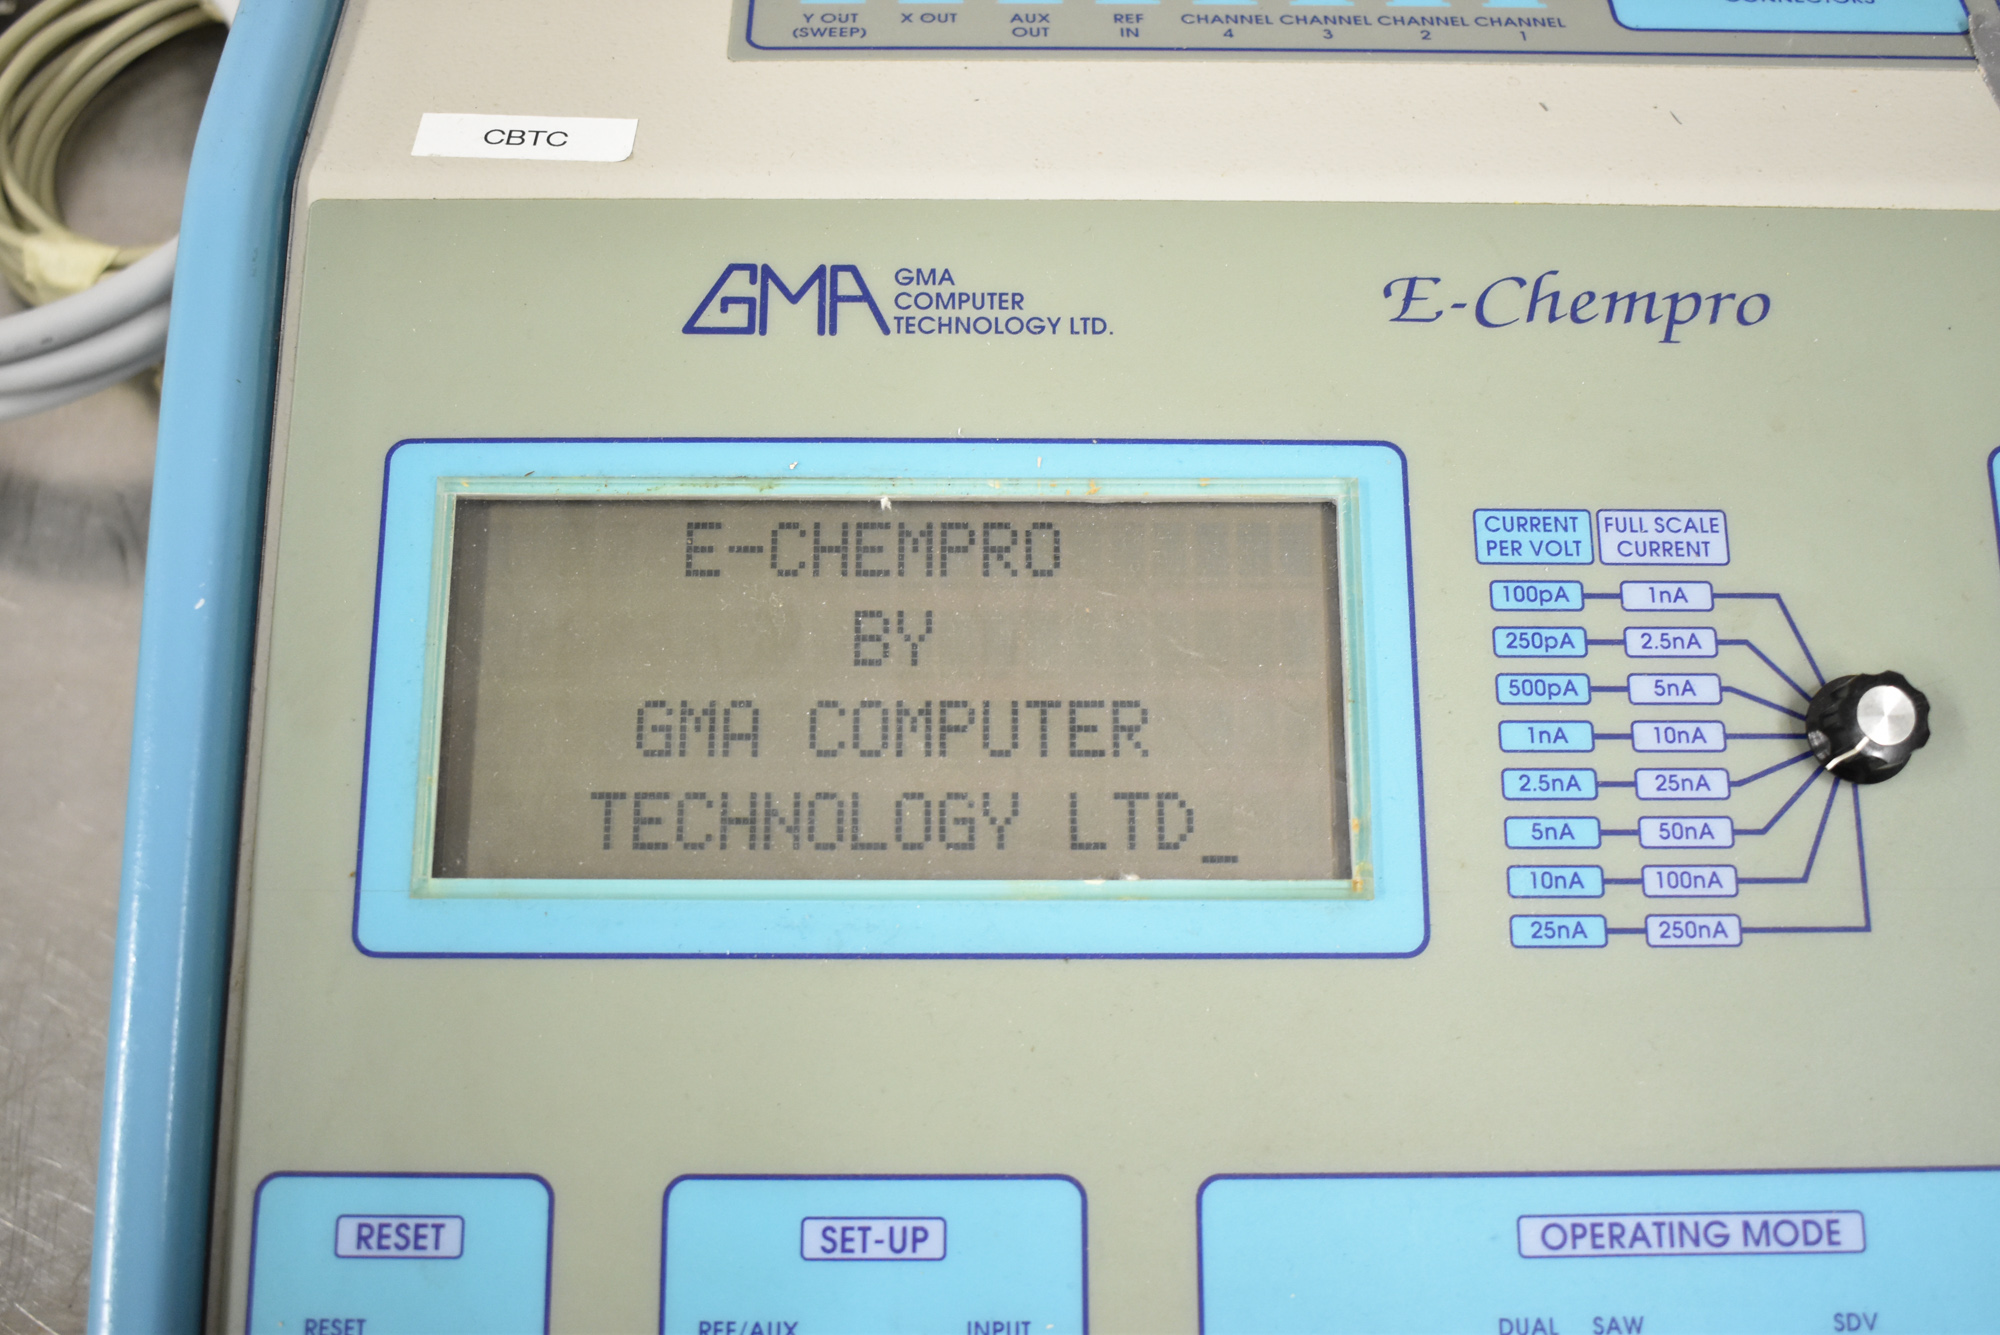 GMA E-CHEMPRO 1/220/50 HIGH SPEED SAMPLER WITH ATEN UC-232A USB TO SERIAL CONVERTER, S/N: 0002 [$ - Image 2 of 5